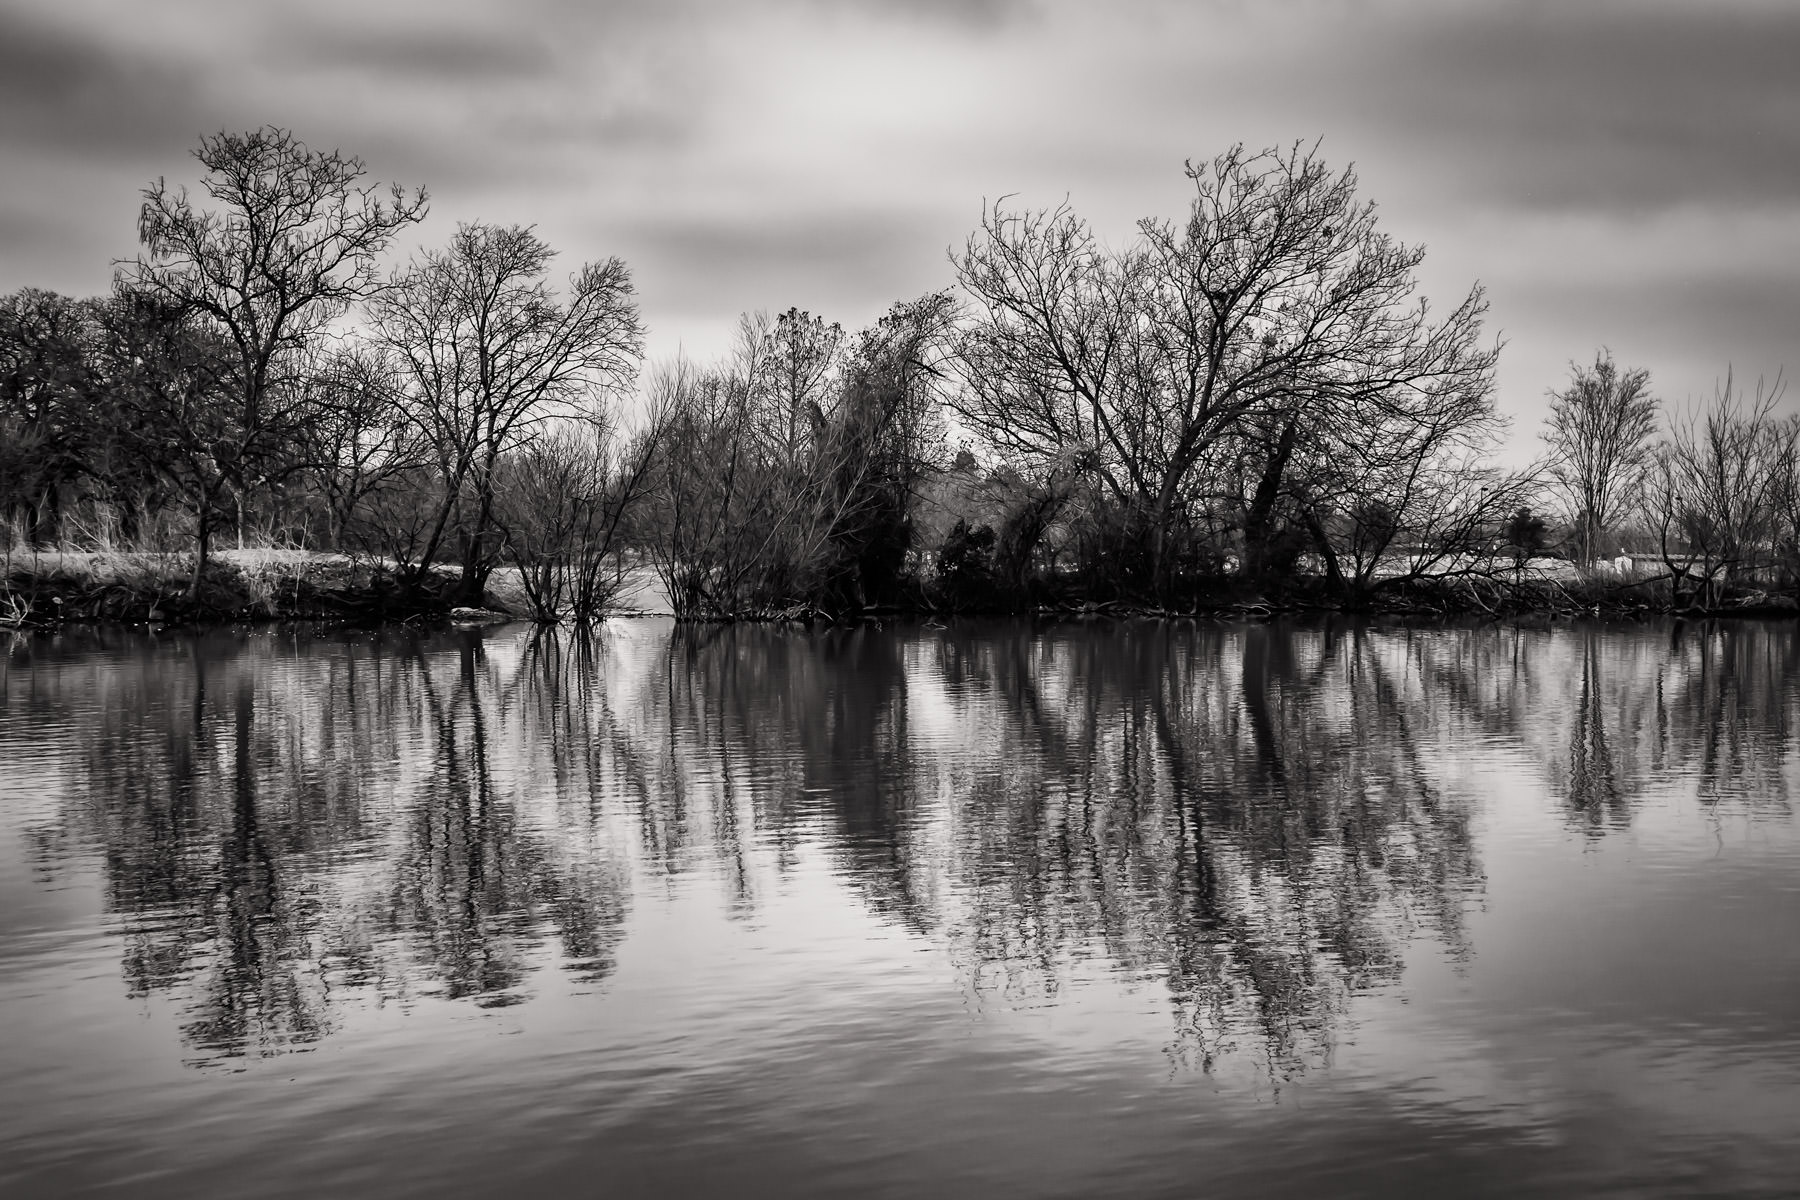 Trees grow along the shore of a small pond on the campus of the University of North Texas in Denton.